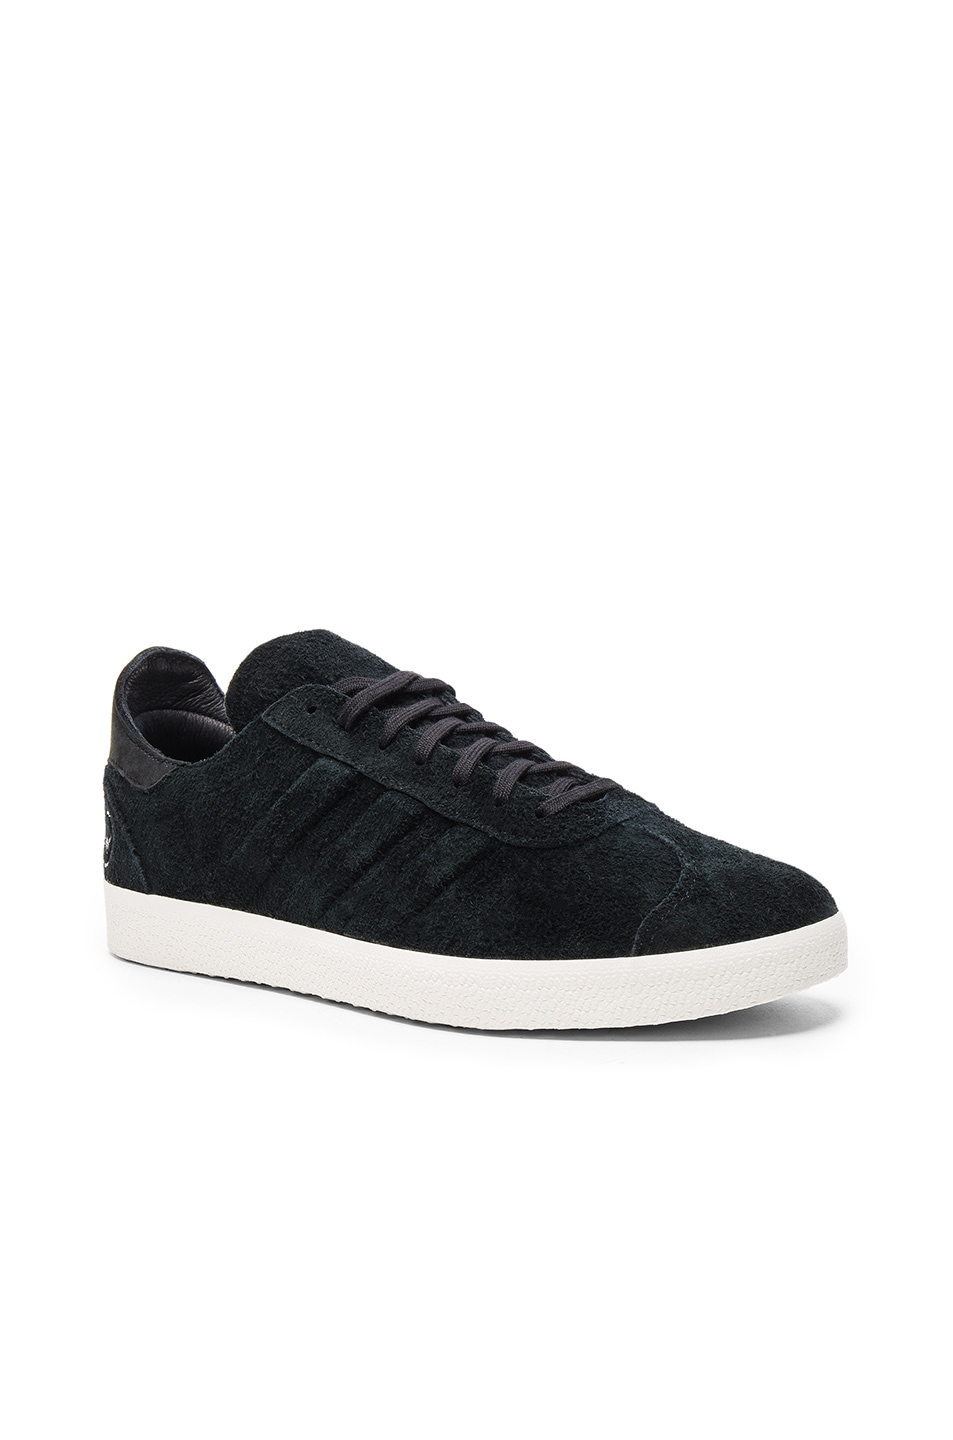 uk availability e285e d85bf Image 1 of adidas by wings + horns WH Gazelle 85 in Black